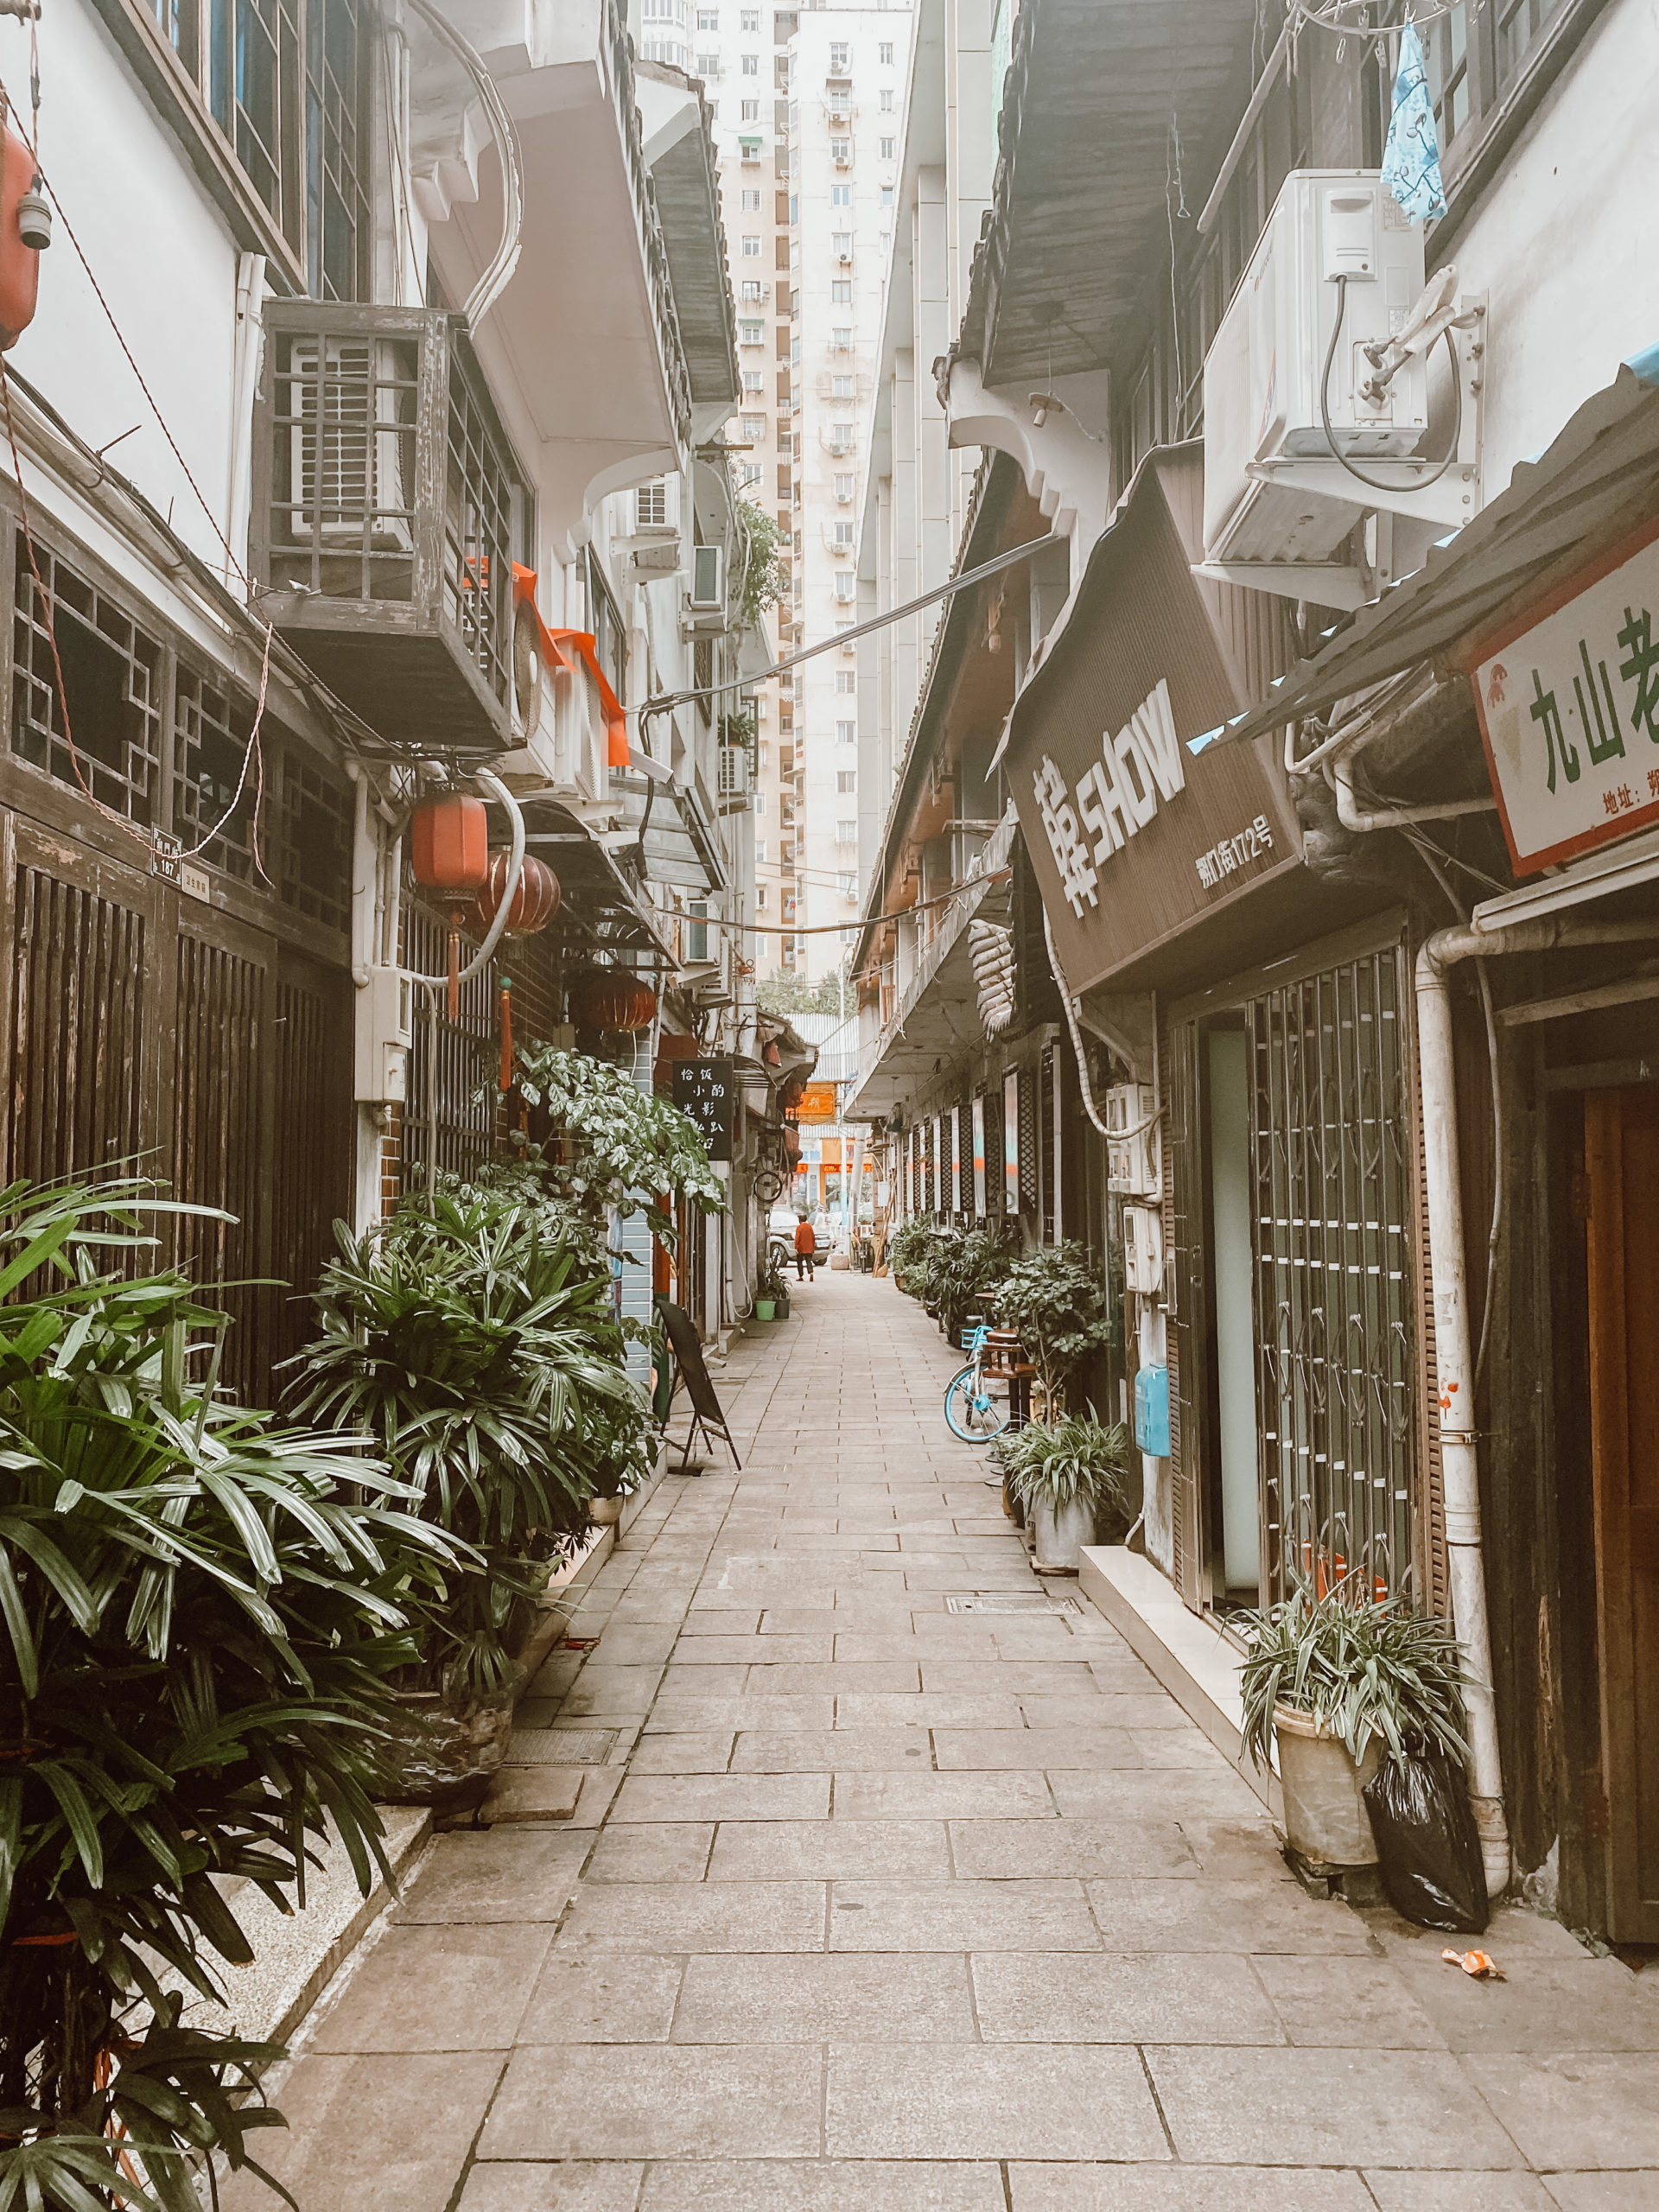 Wenzhou, Zhejiang Province – What can you actually do there?